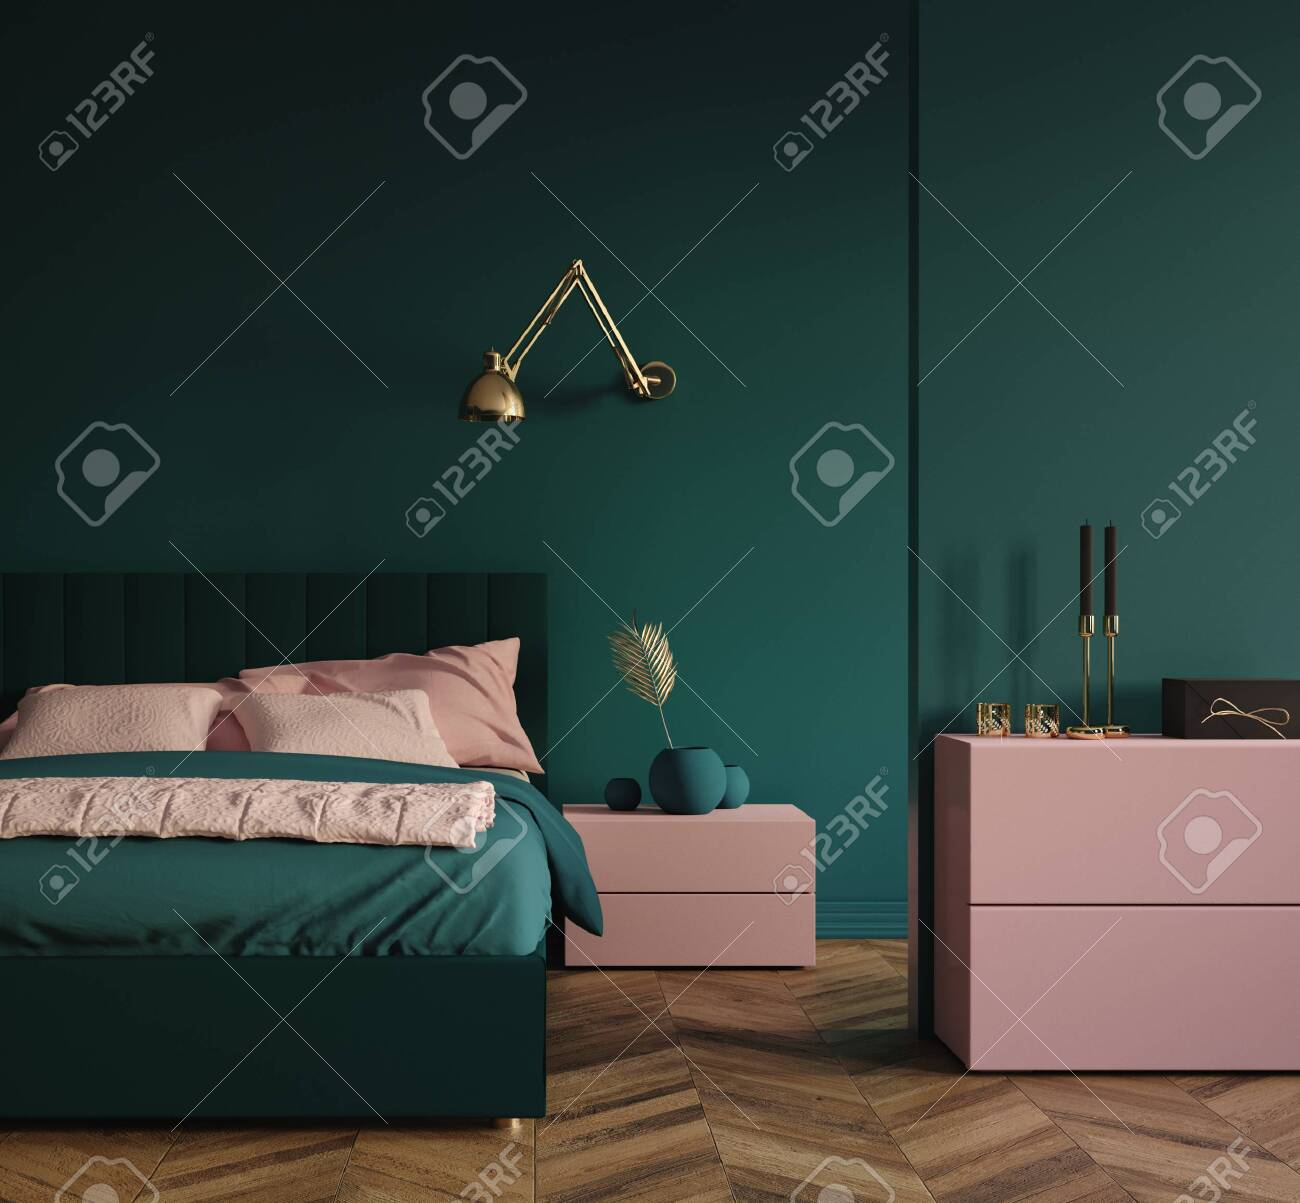 Modern Dark Green Bedroom Interior With Pink Elements And Golden Stock Photo Picture And Royalty Free Image Image 136549633